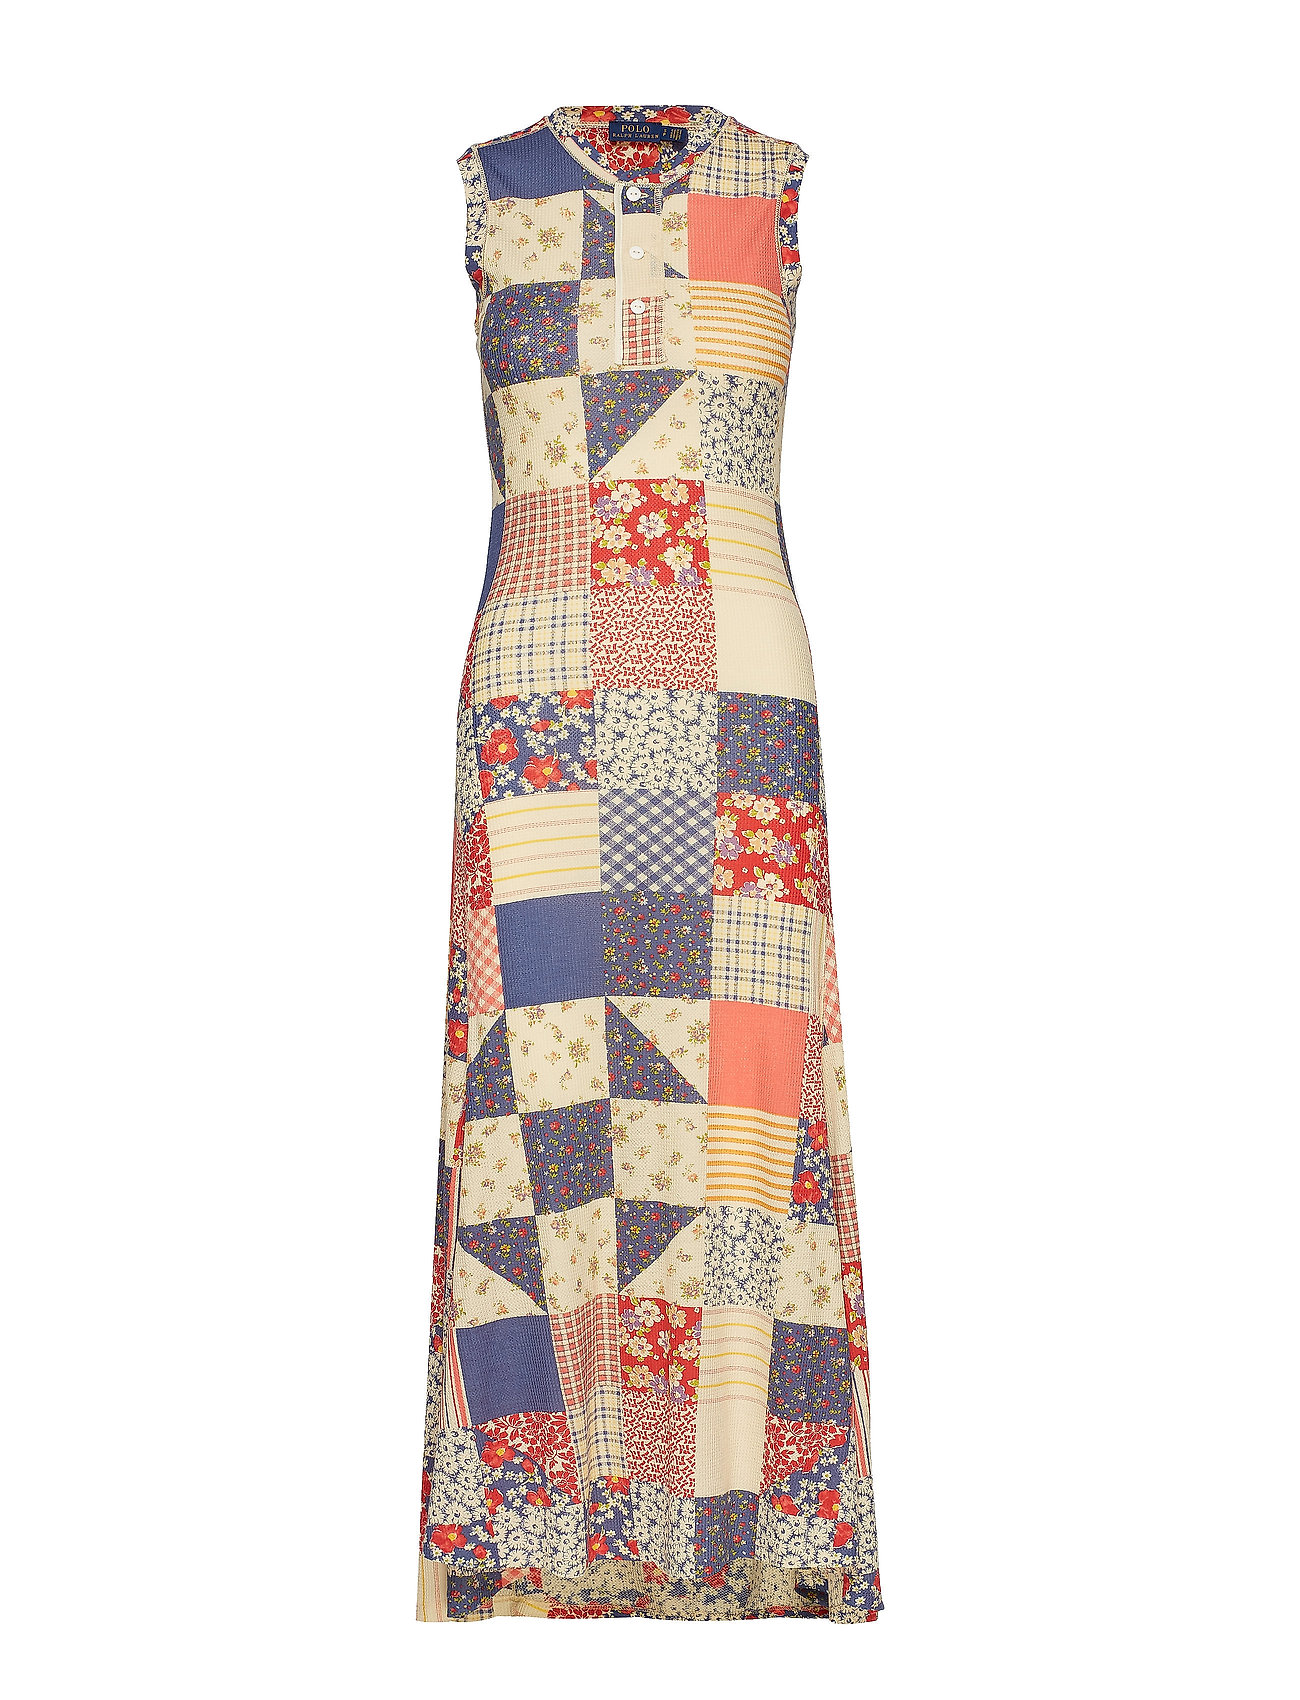 acb0d1f361 Patchwork Sleeveless Dress